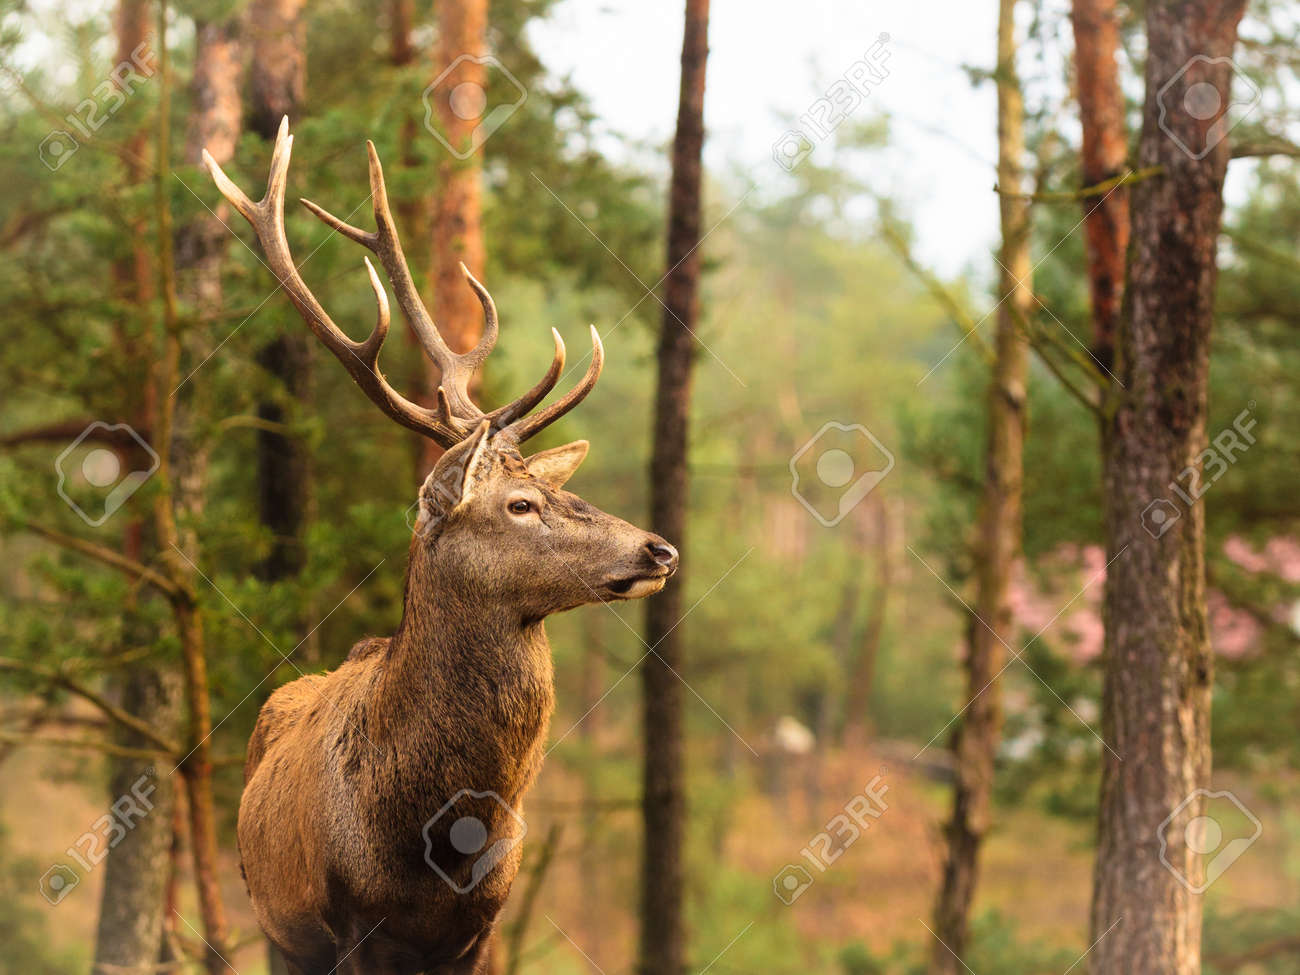 Majestic powerful adult male red deer stag in autumn fall forest. Animals in natural environment, beauty in nature. Stock Photo - 39937689